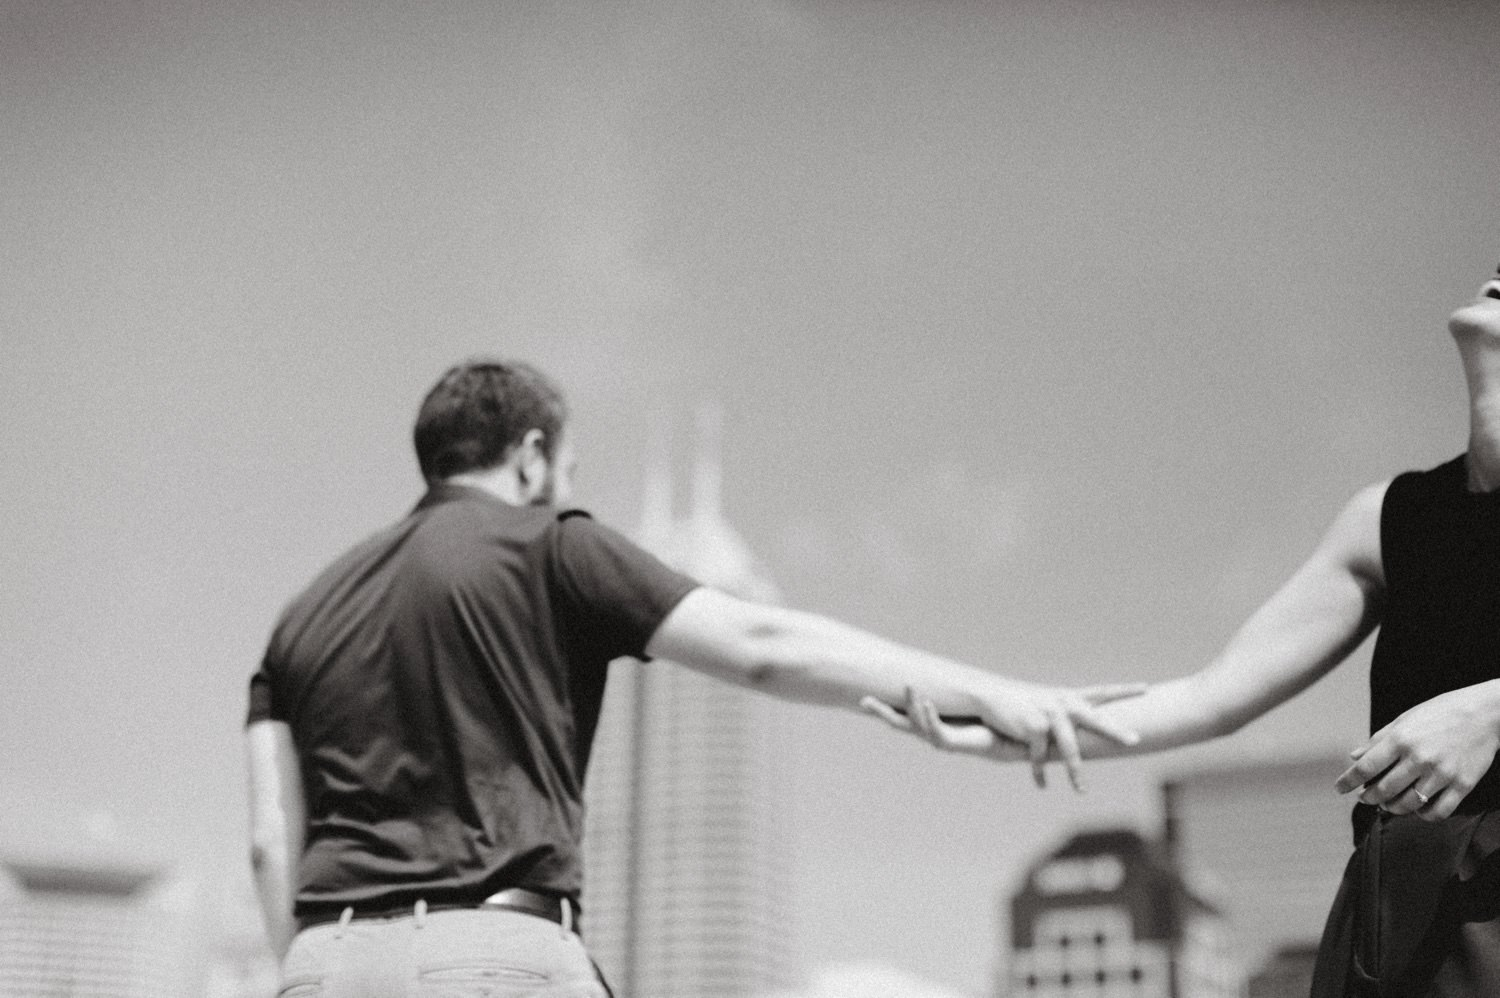 downtown-indianapolis-engagement-session-rooftop-indianapolis-engagement-photographer-kelly-marcelo-photography018.JPG